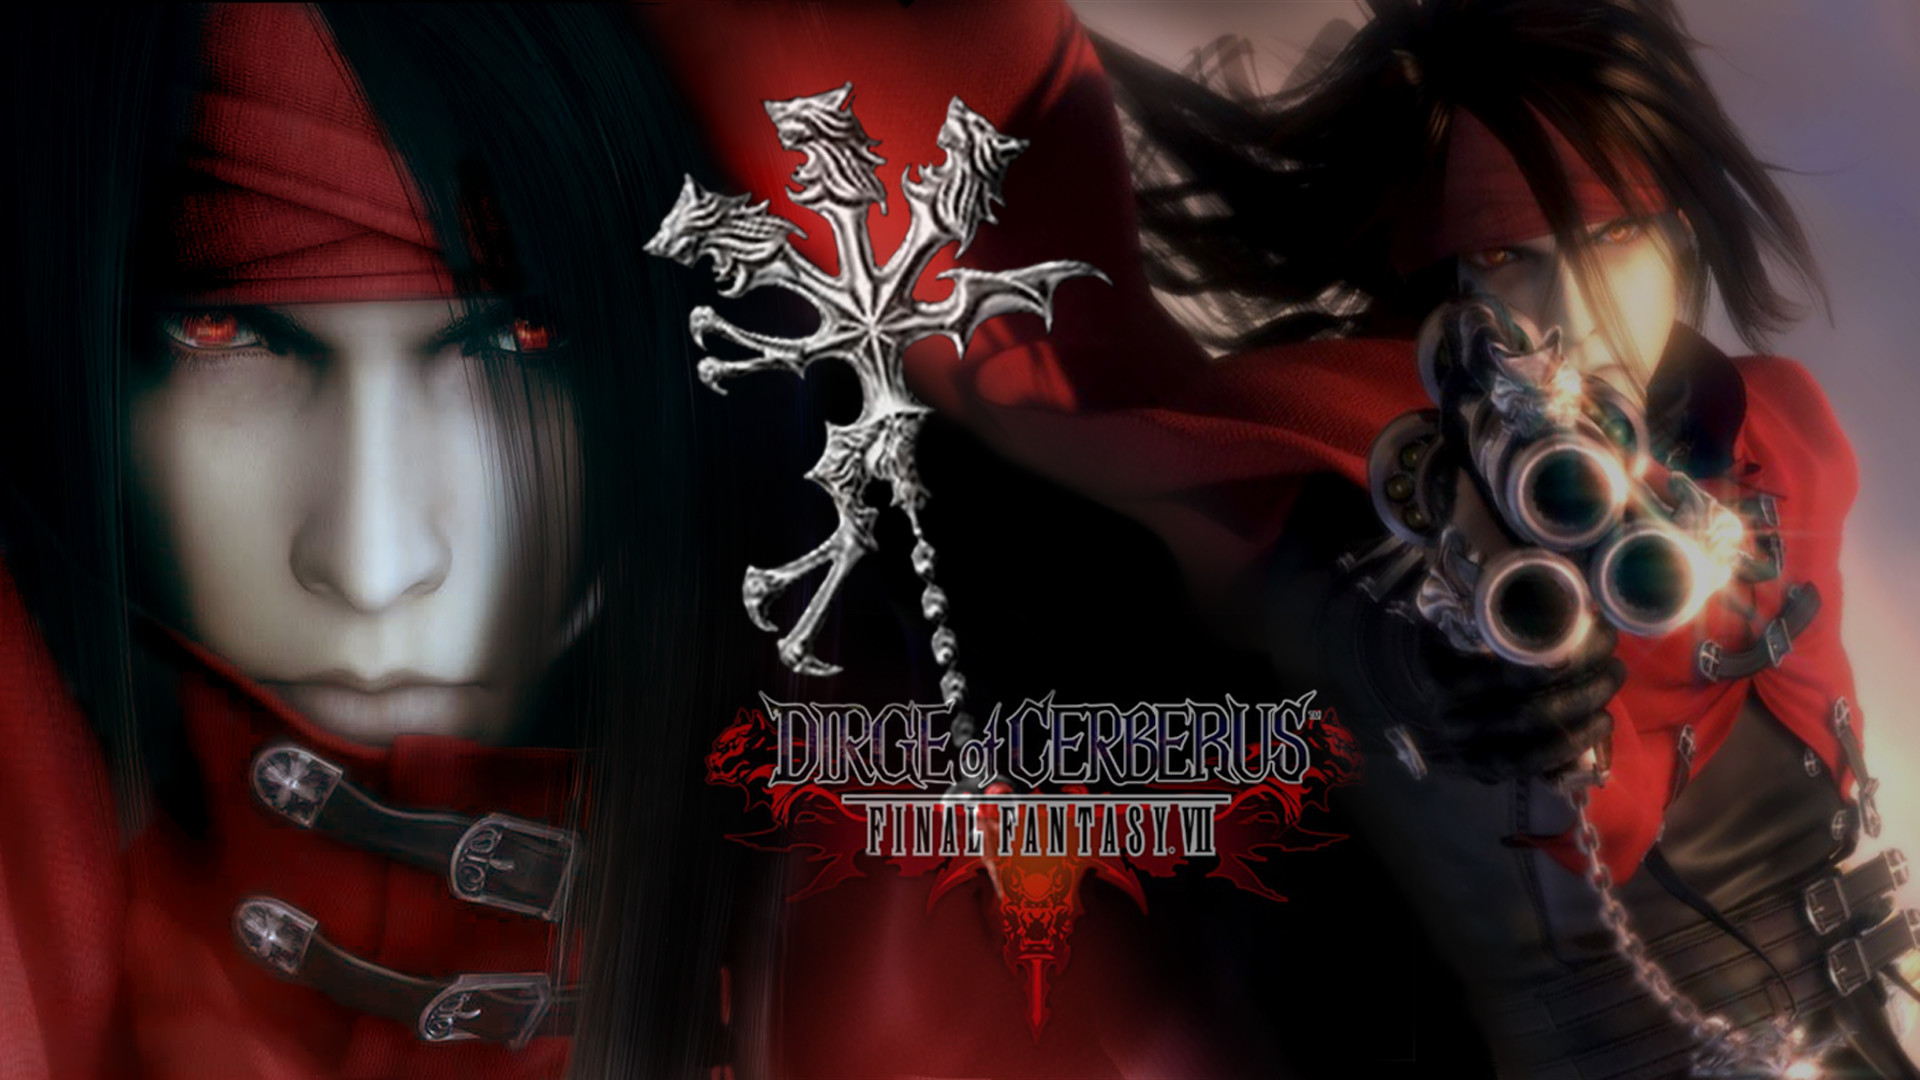 1920x1080 Final Fantasy: Dirge of Cerberus images Vincent HD wallpaper and background  photos